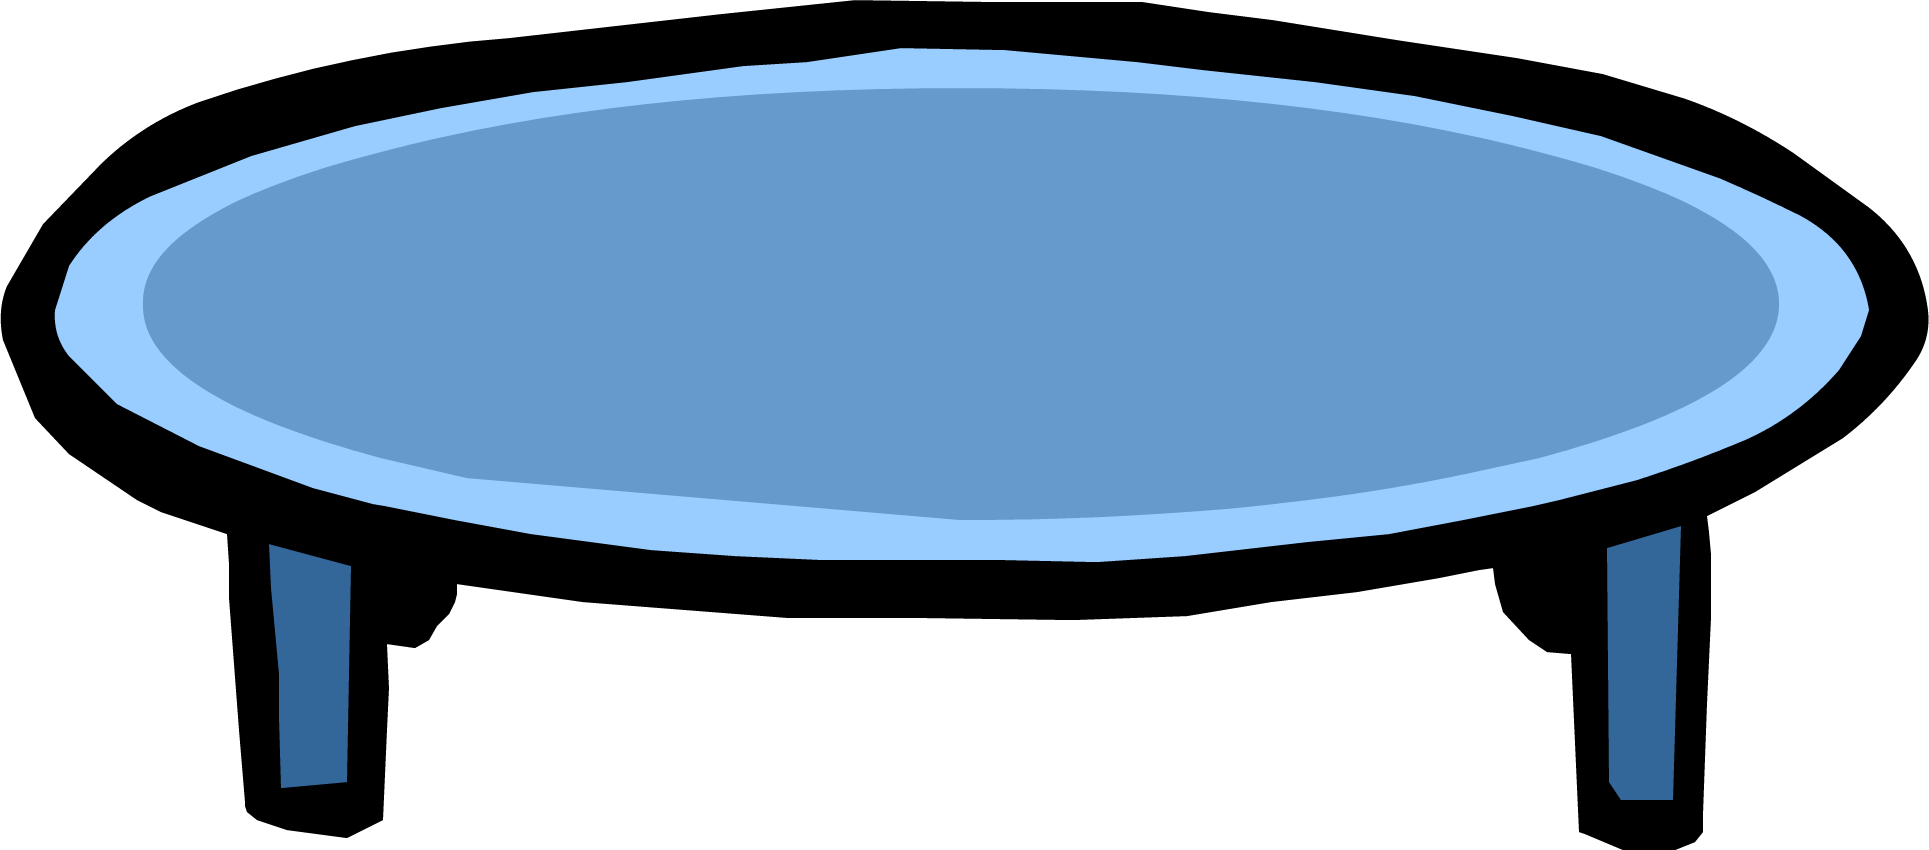 Blue club penguin wiki. Clipart table coffee table